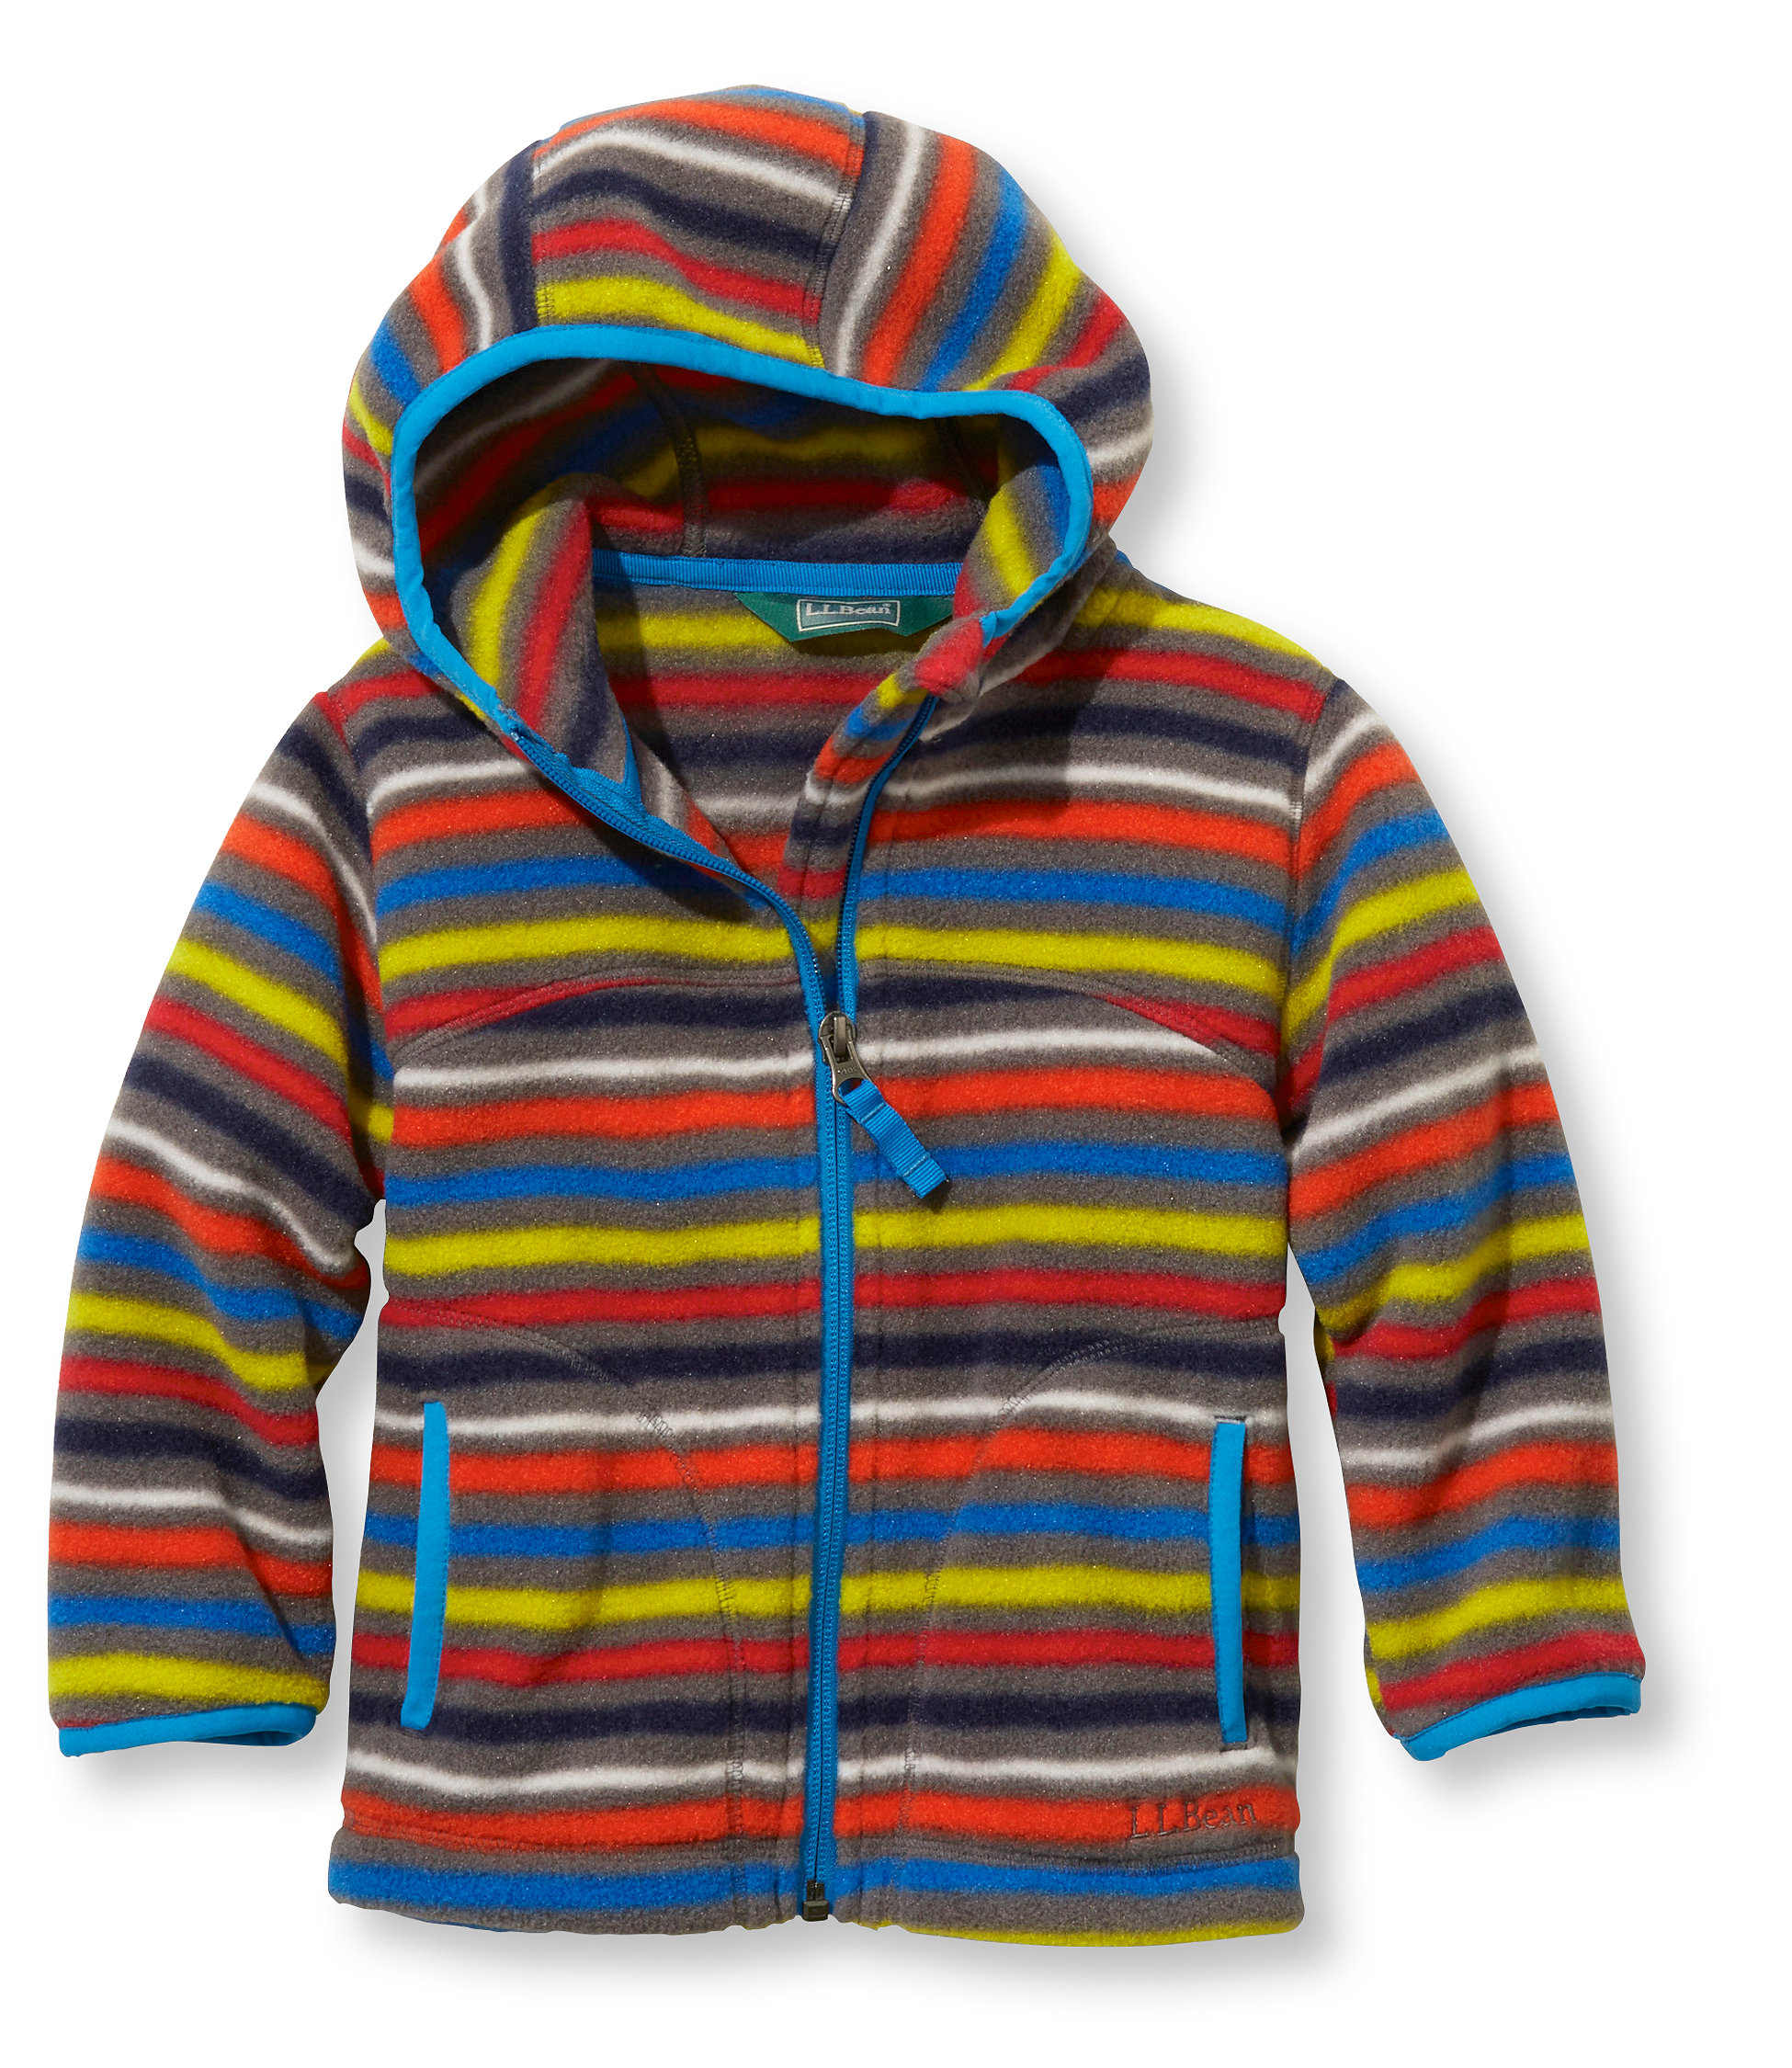 L.L.Bean Trail Model Fleece Hooded Jacket, Print